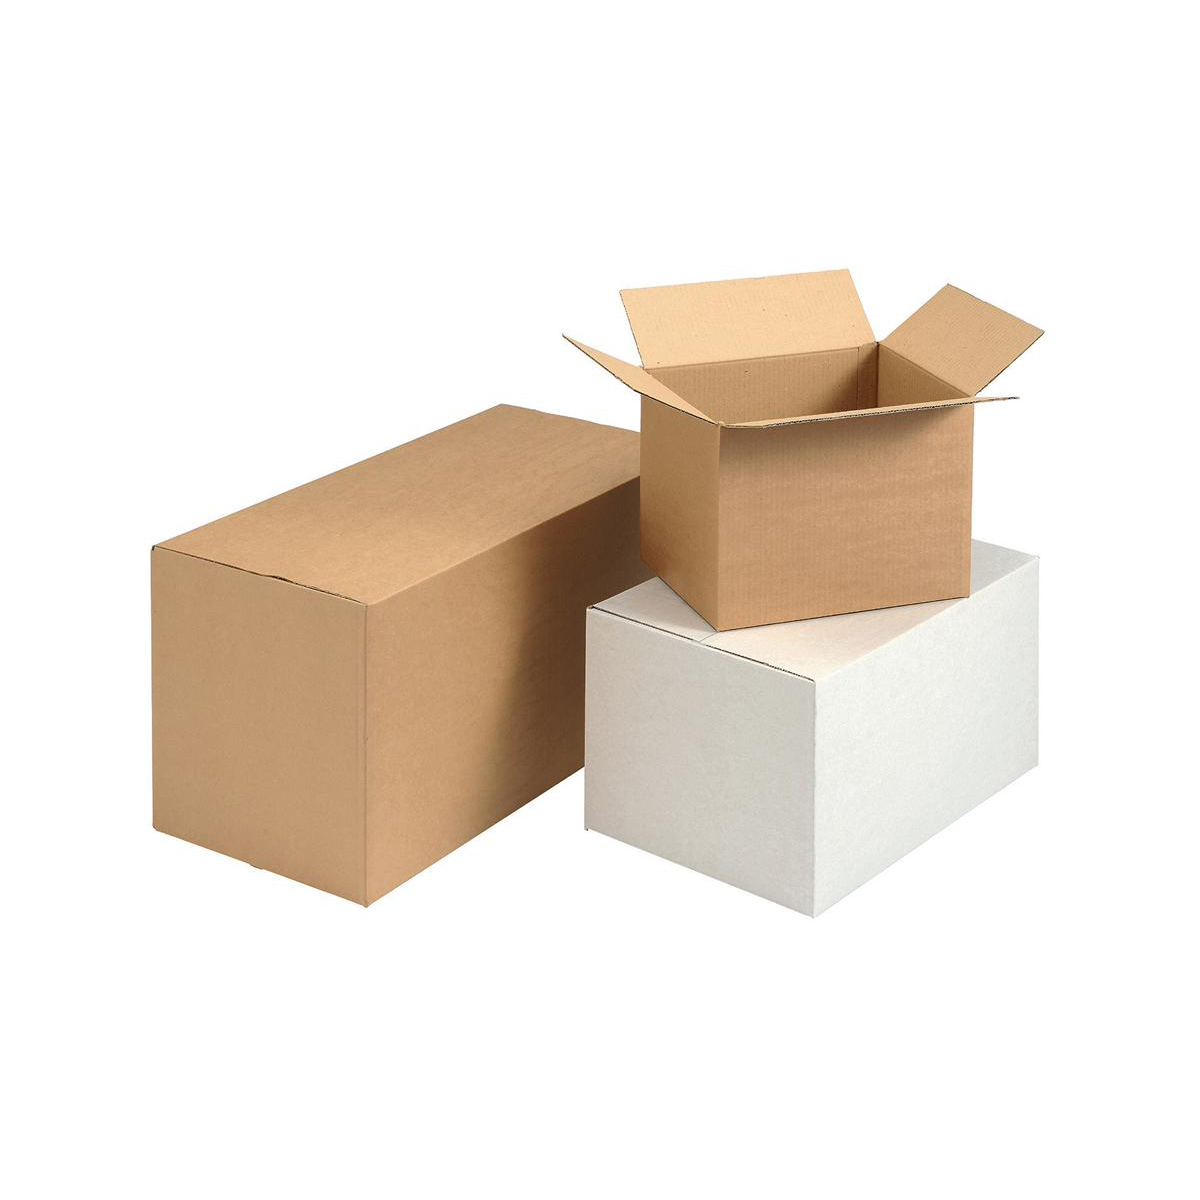 Packing Carton Single Wall Strong Flat Packed W457xD305xH248mm Brown [Pack 10]